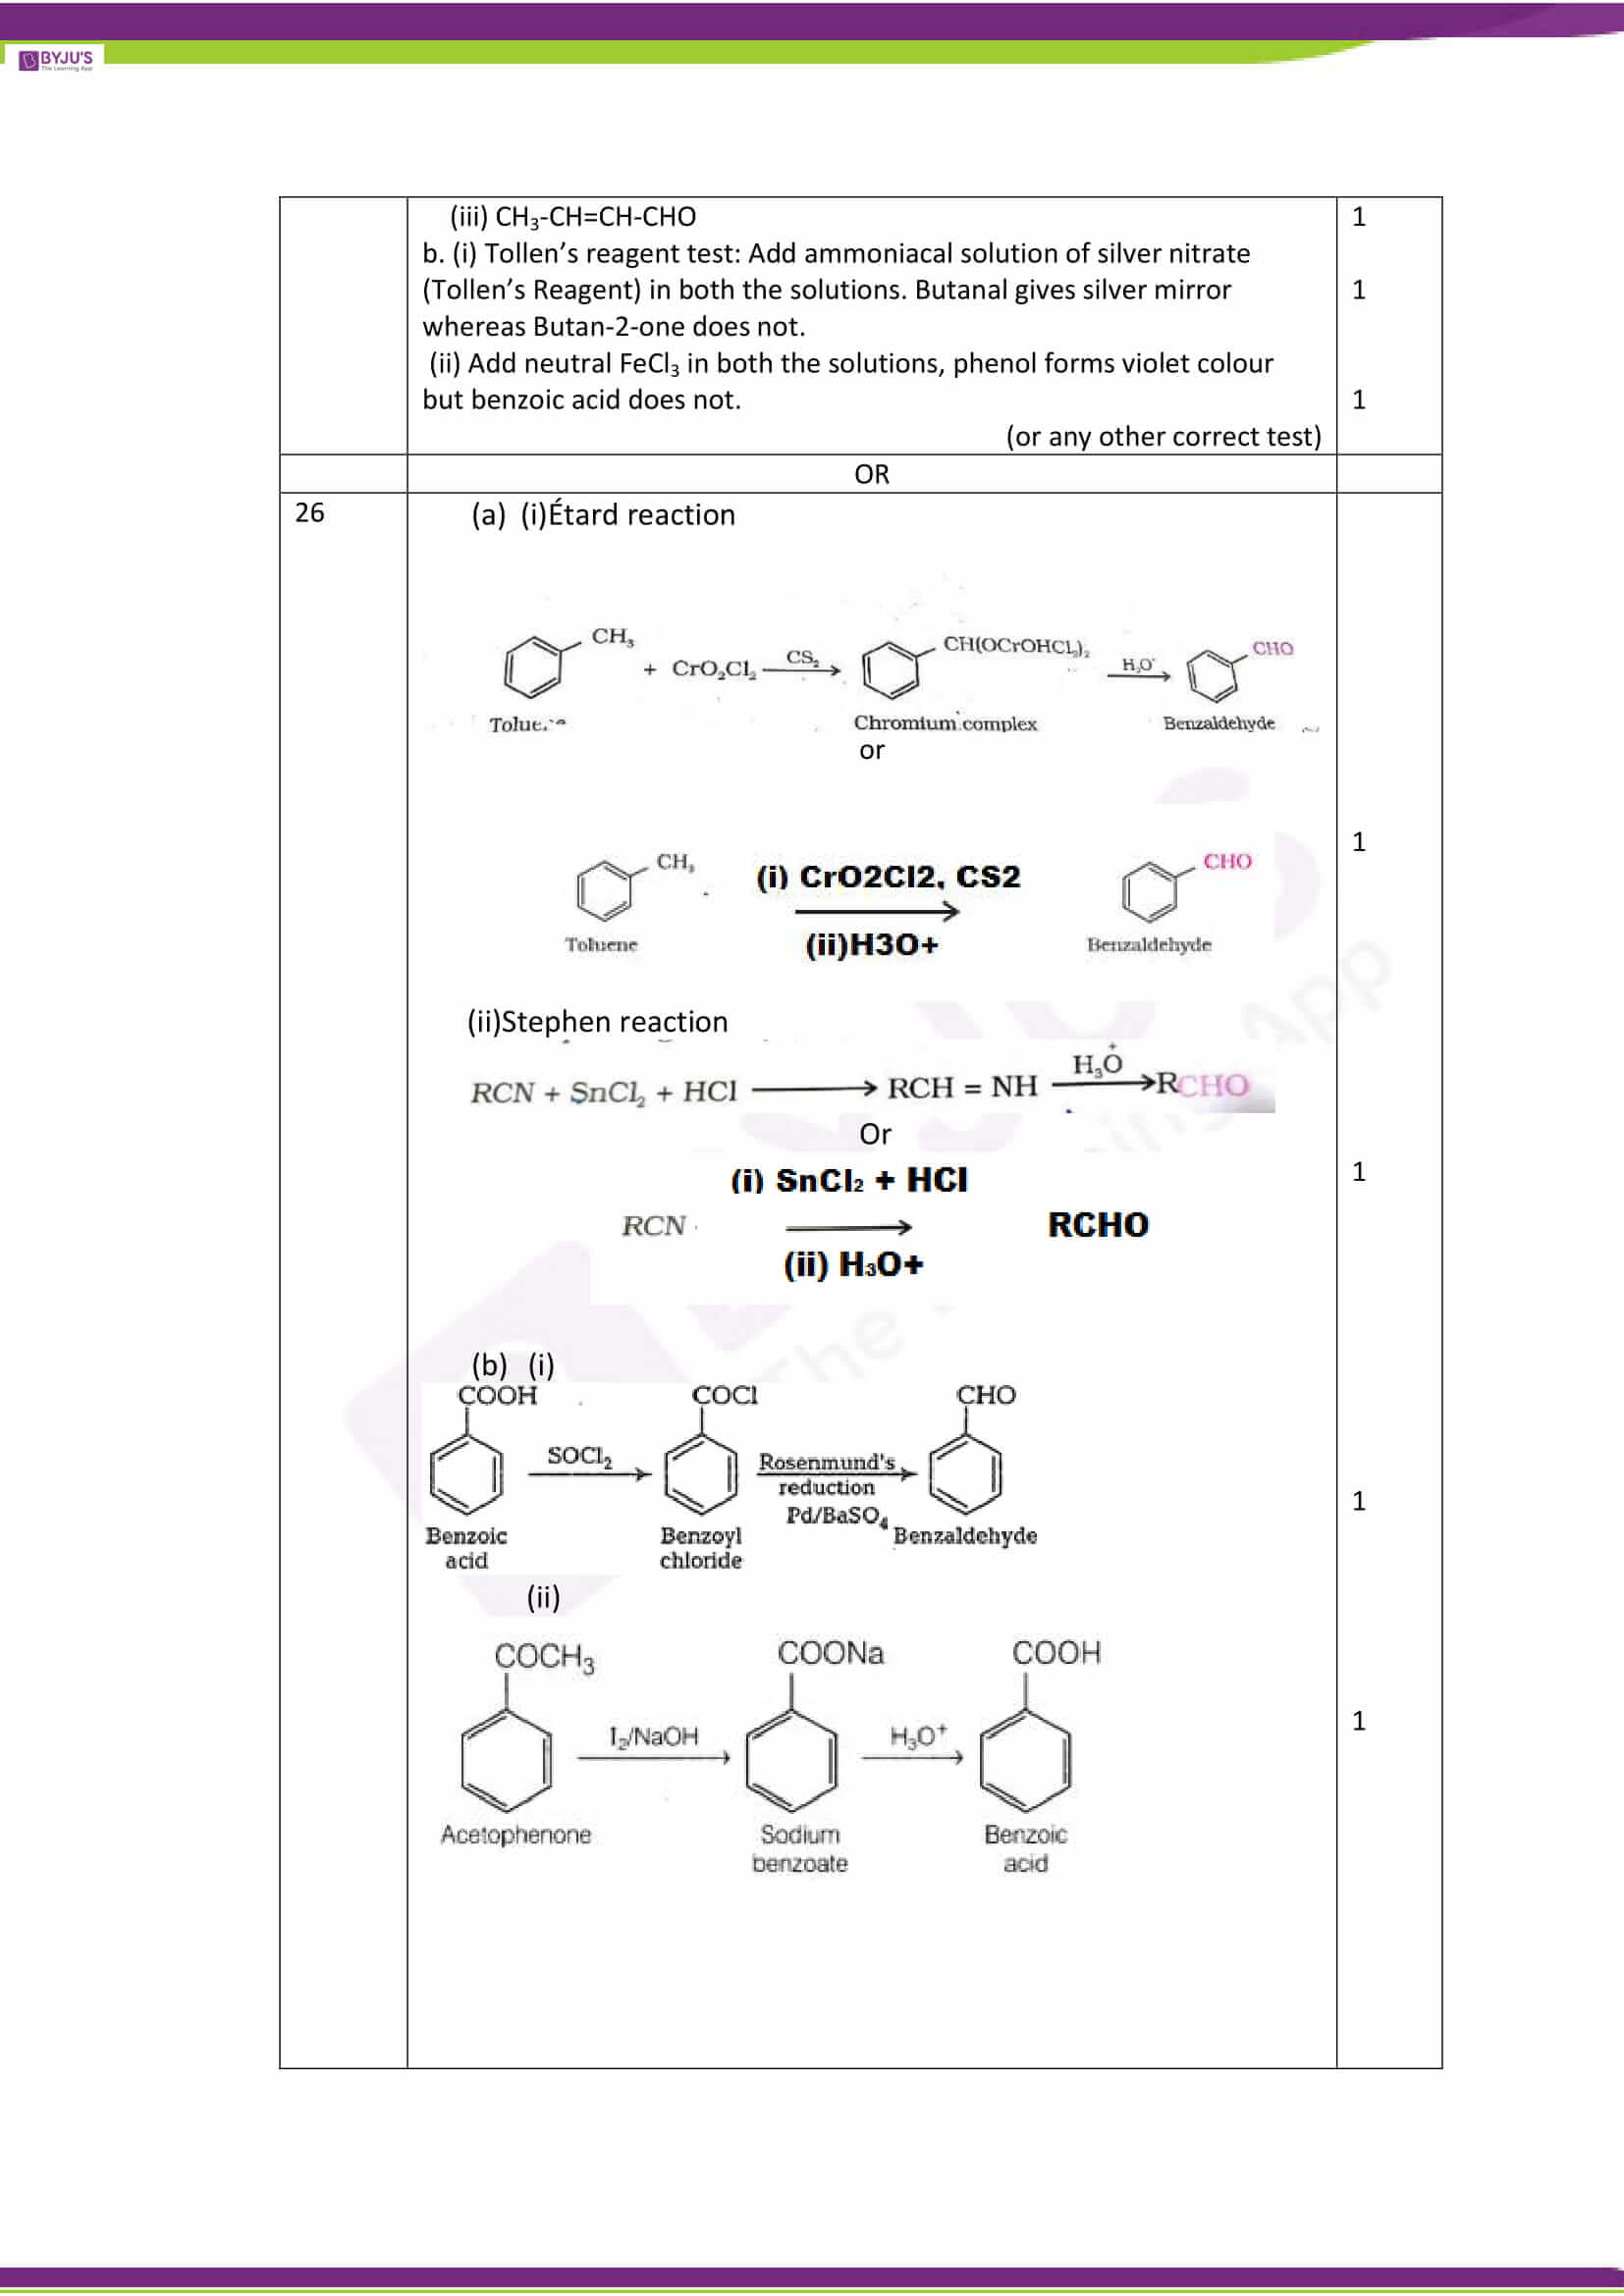 cbse class 12 solution 2017 chemistry set 1